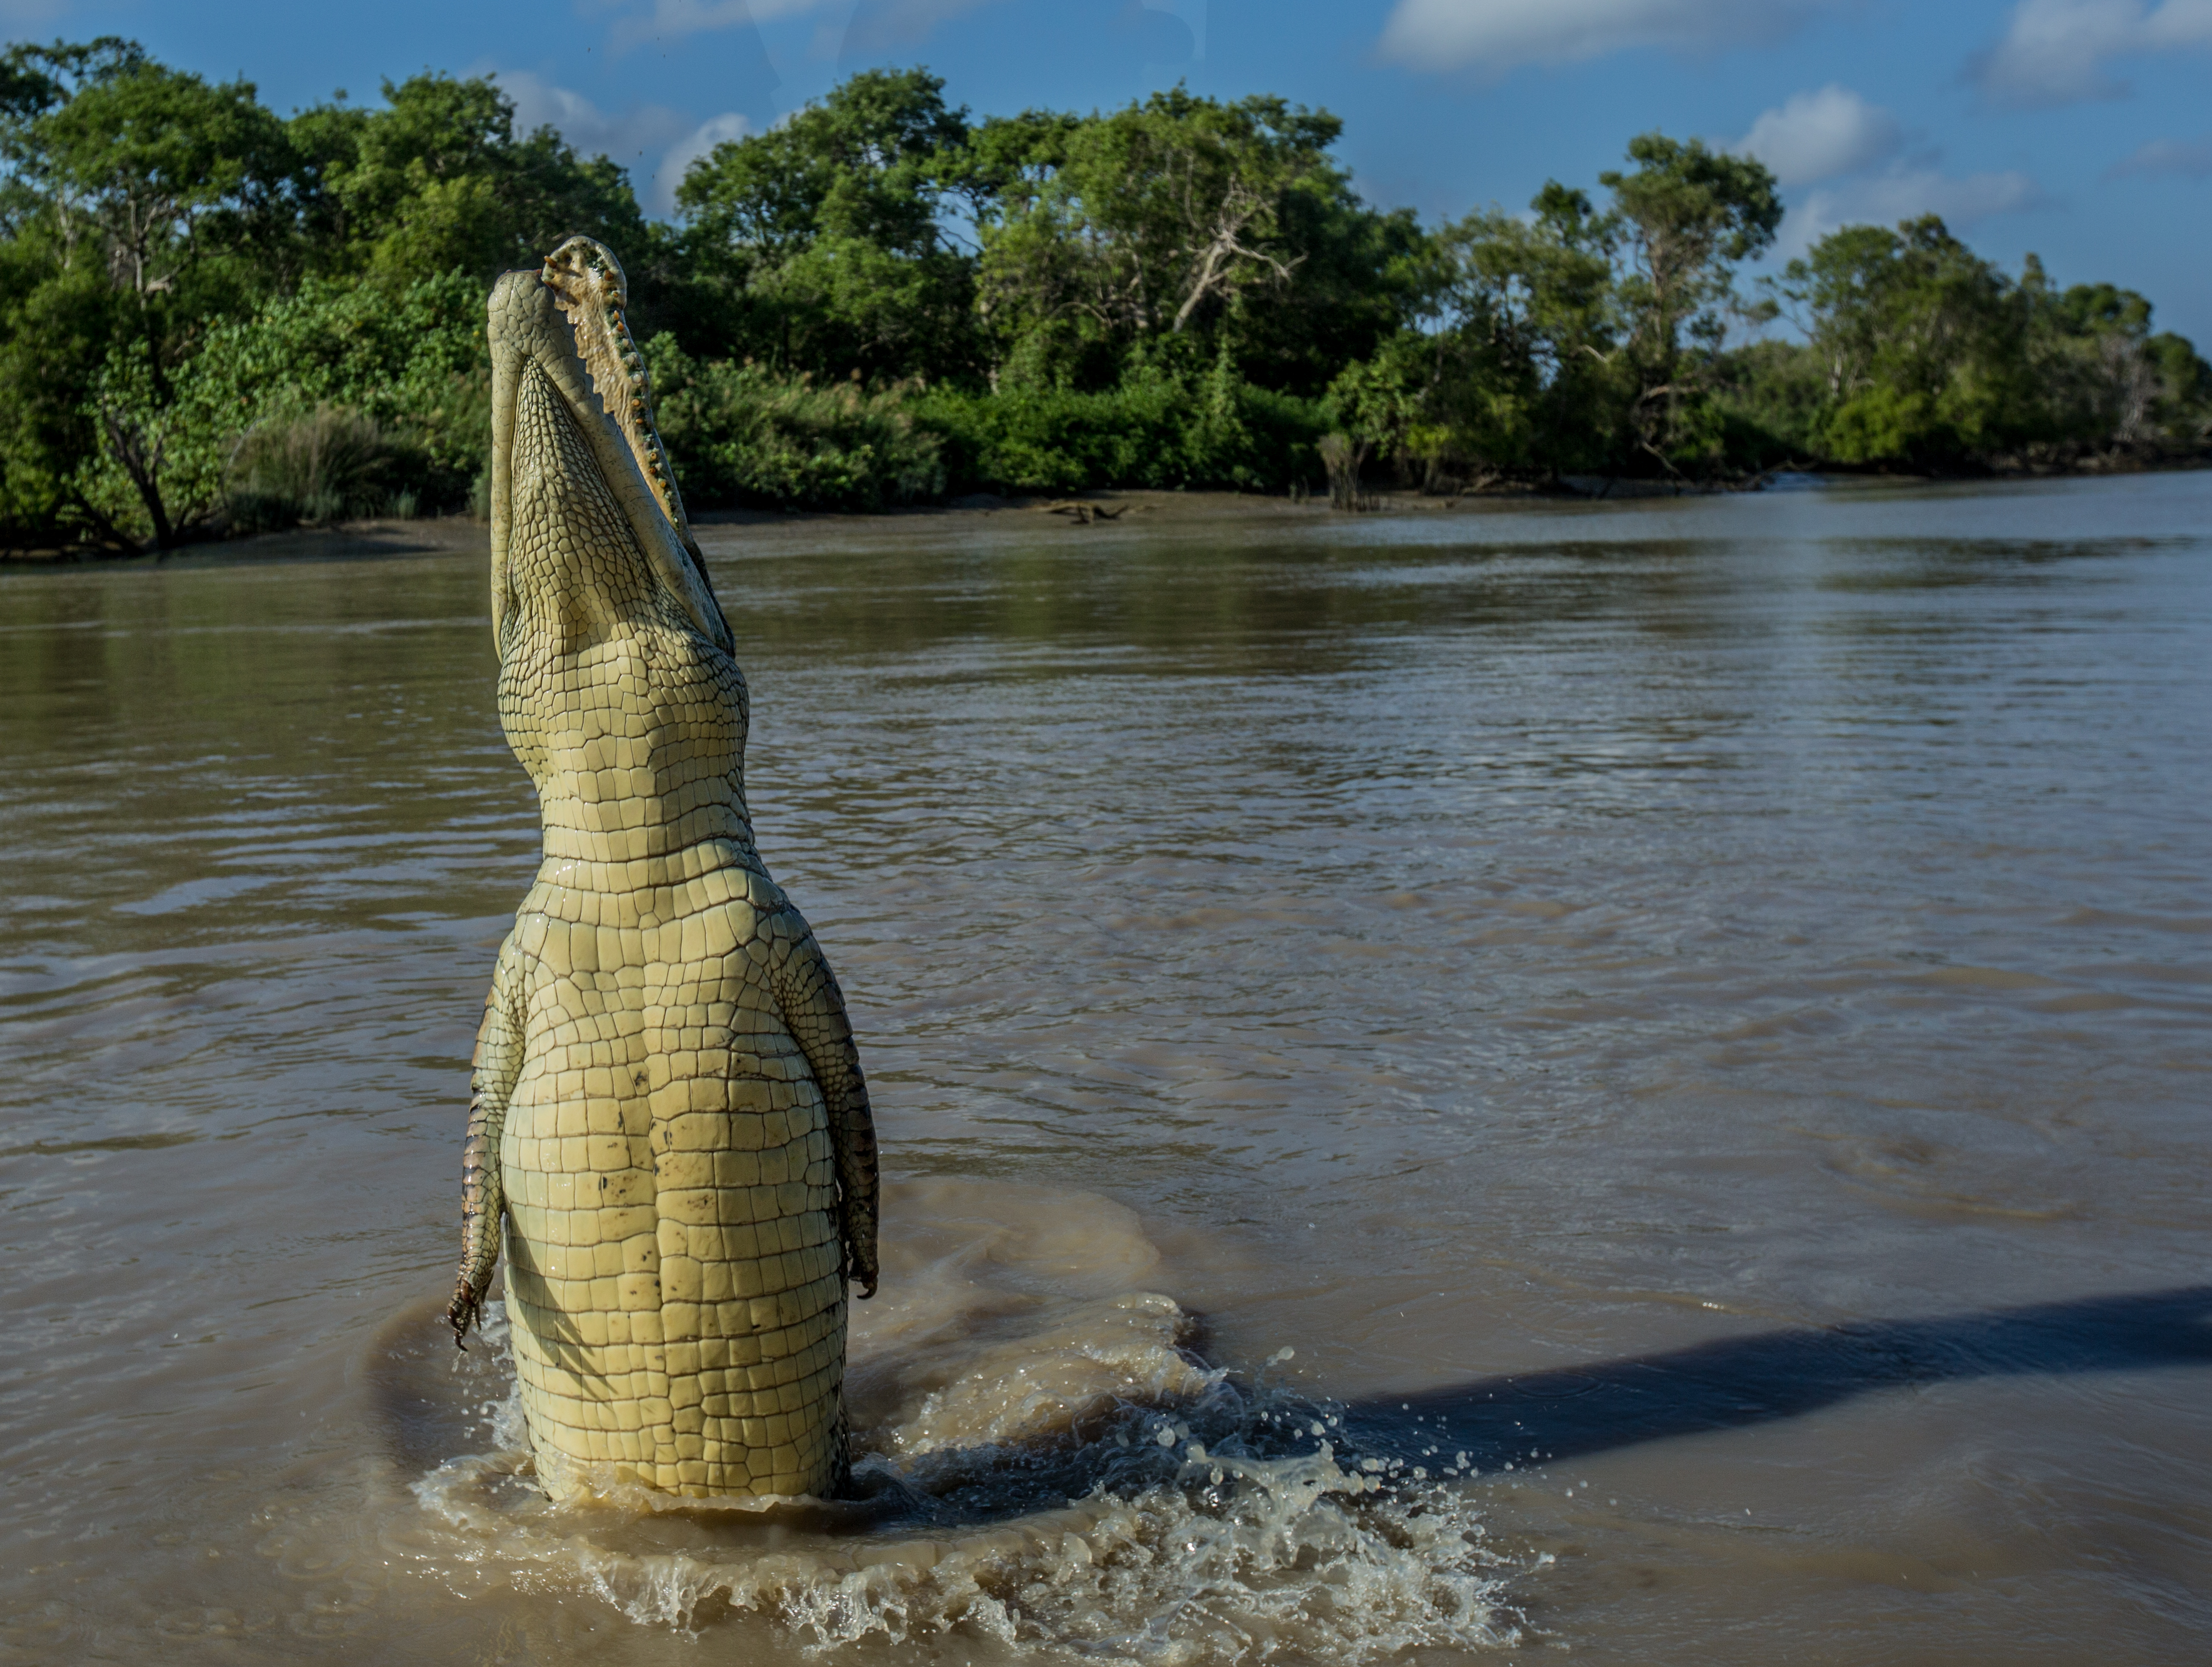 a crocodile jumps out of the water